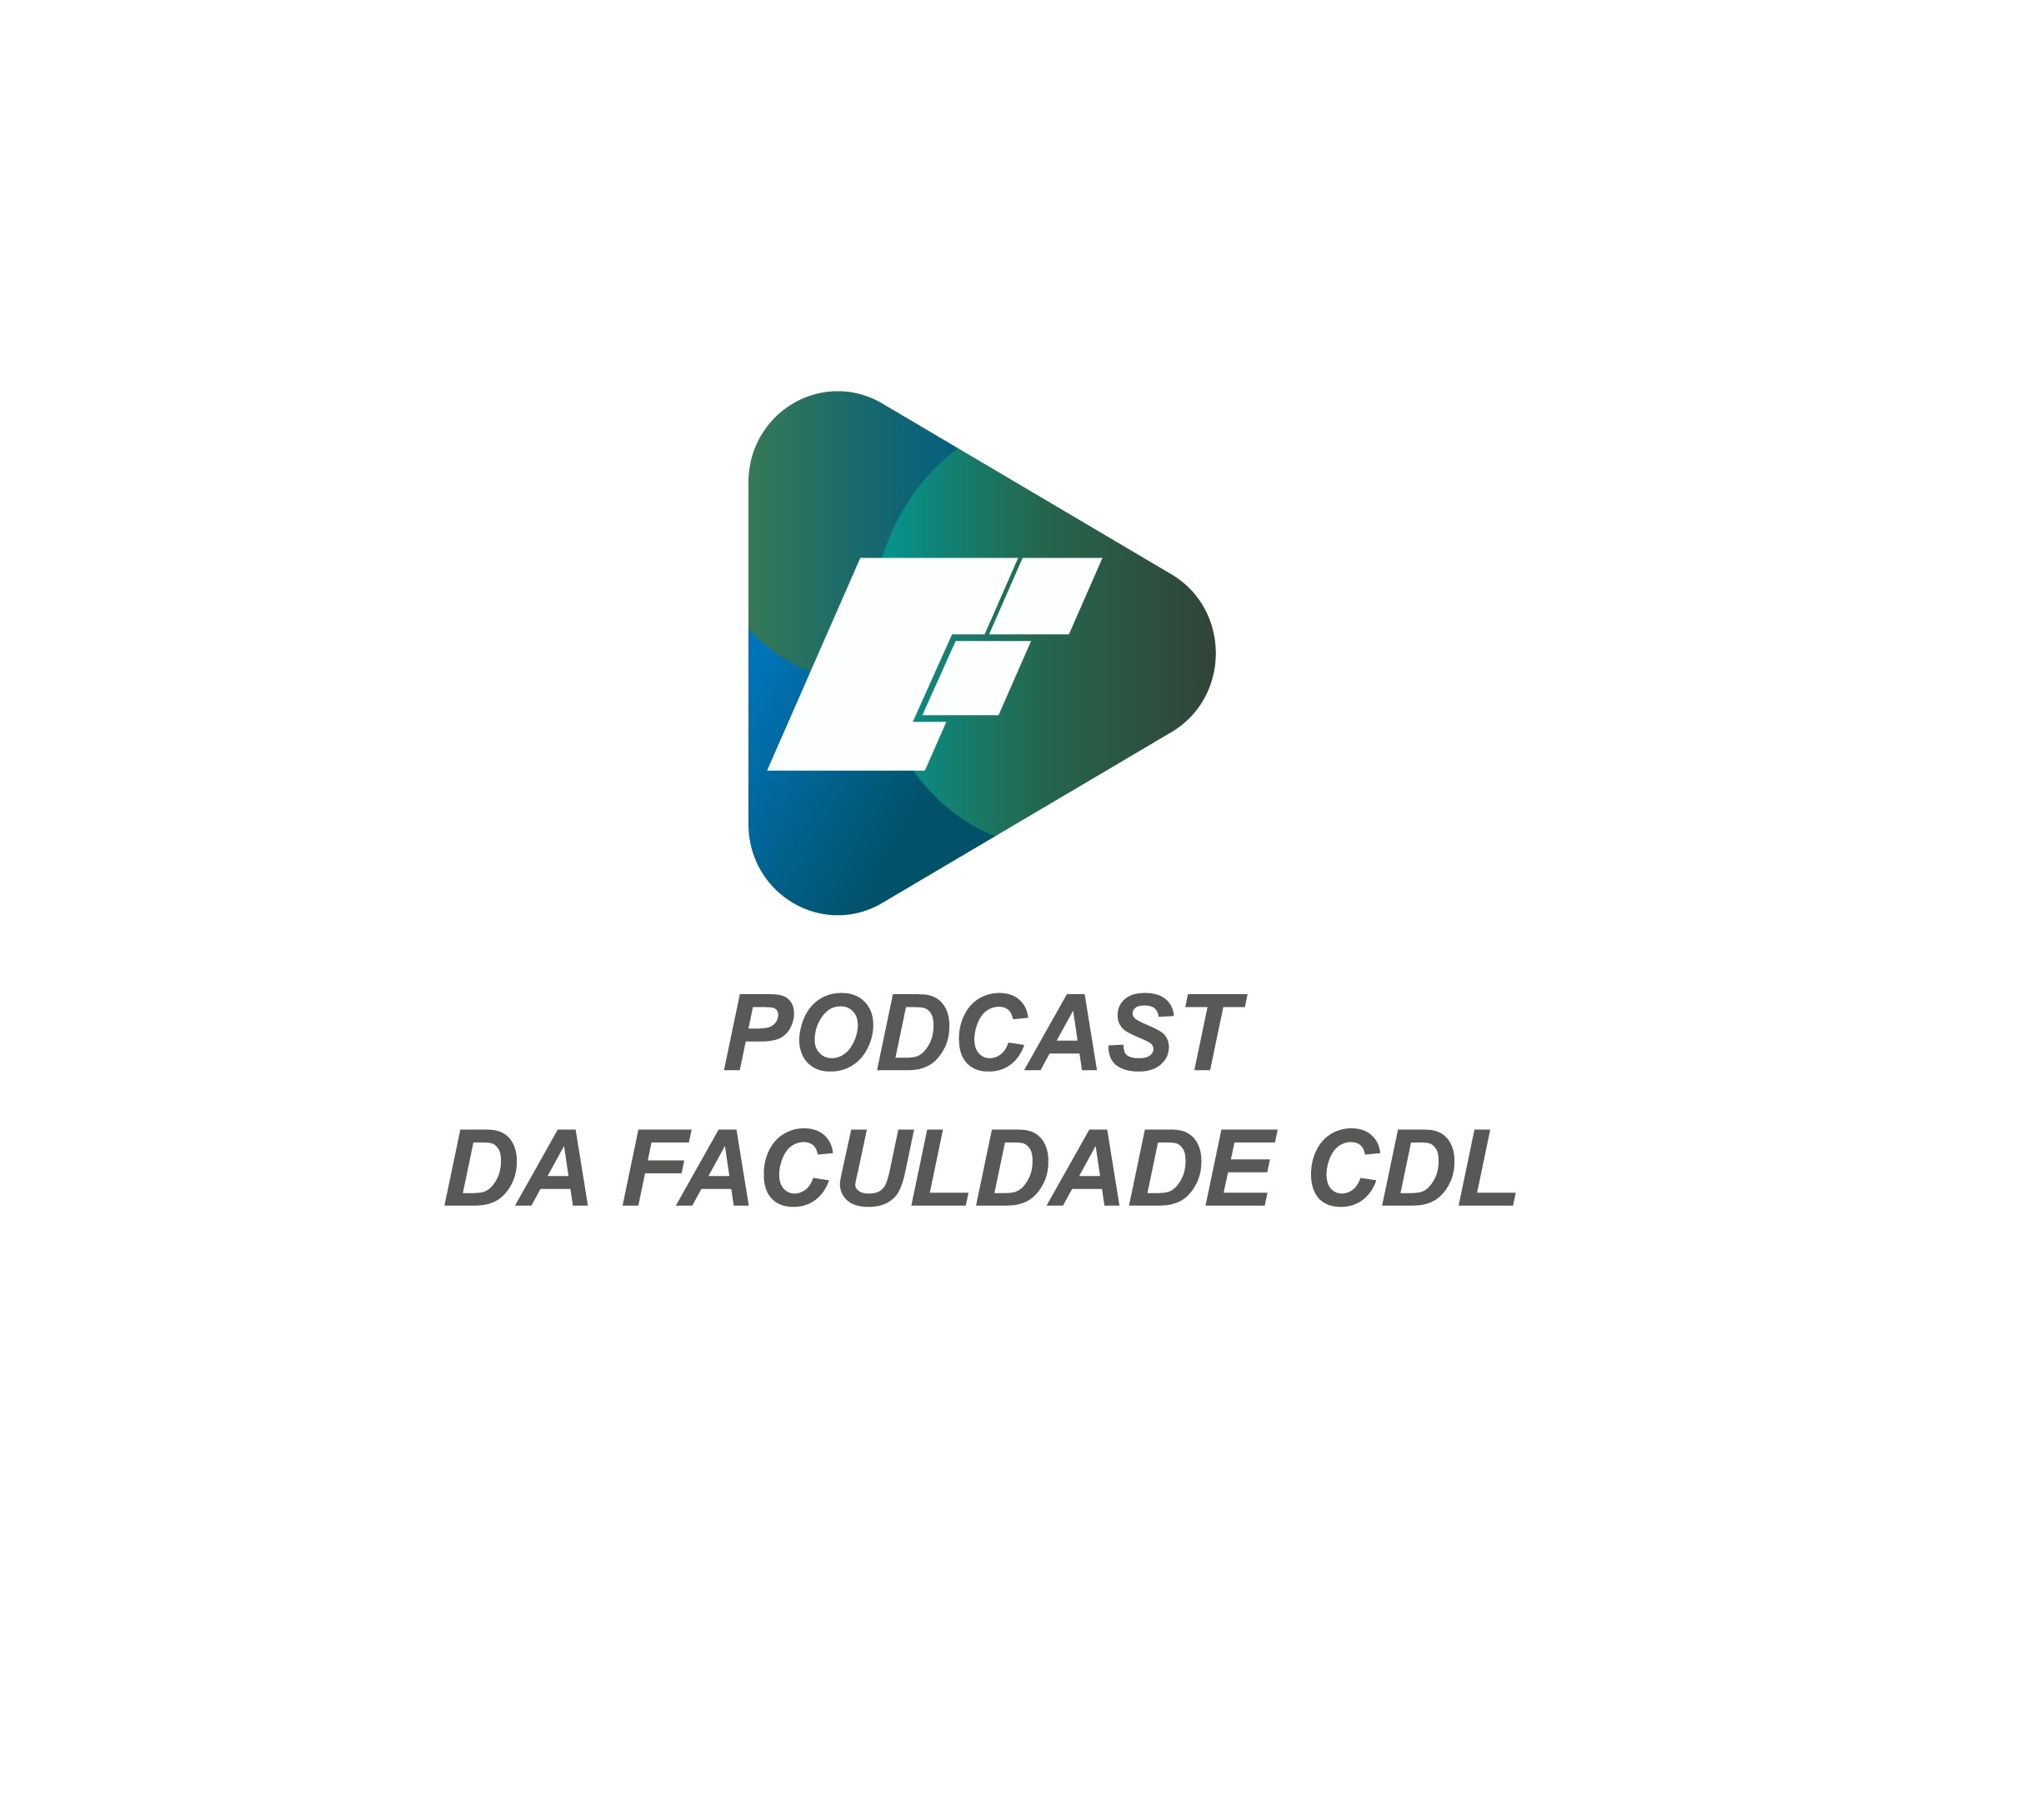 podcast-da-faculdade-cdl-esta-no-ar-com-temas-do-mundo-dos-negocios-e-do-varejo